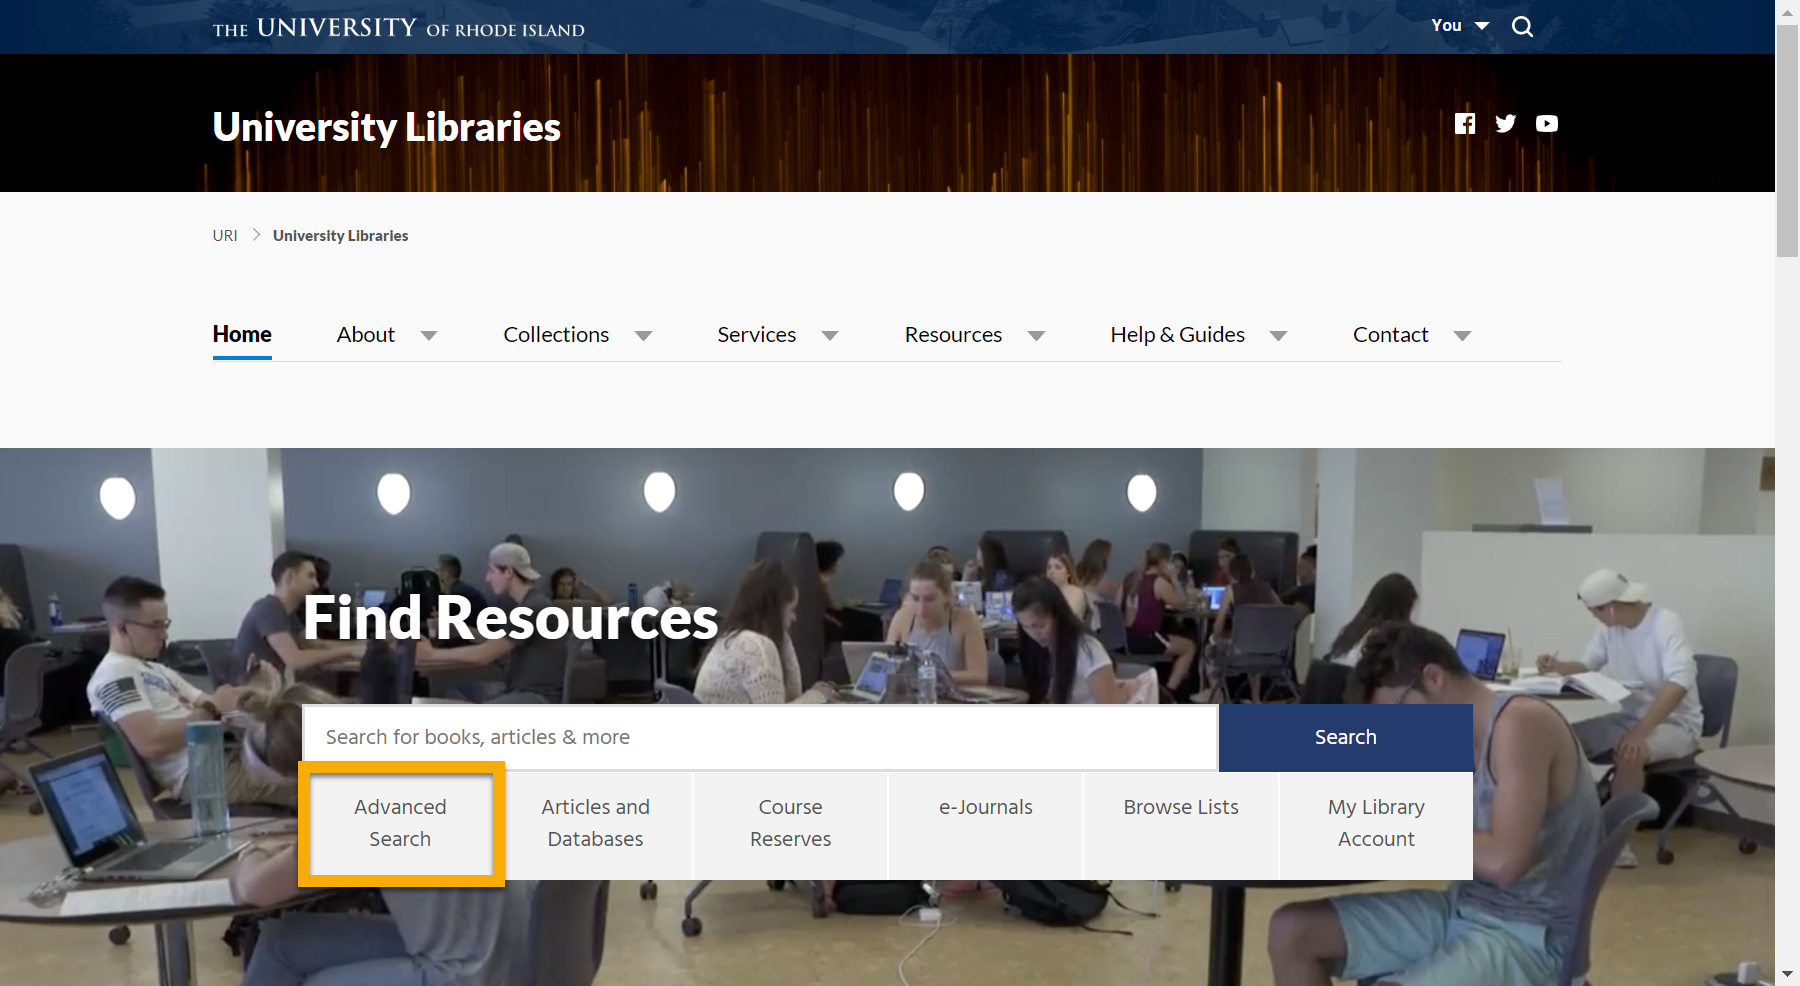 URI Libraries home page with the Advanced Search button highlighted